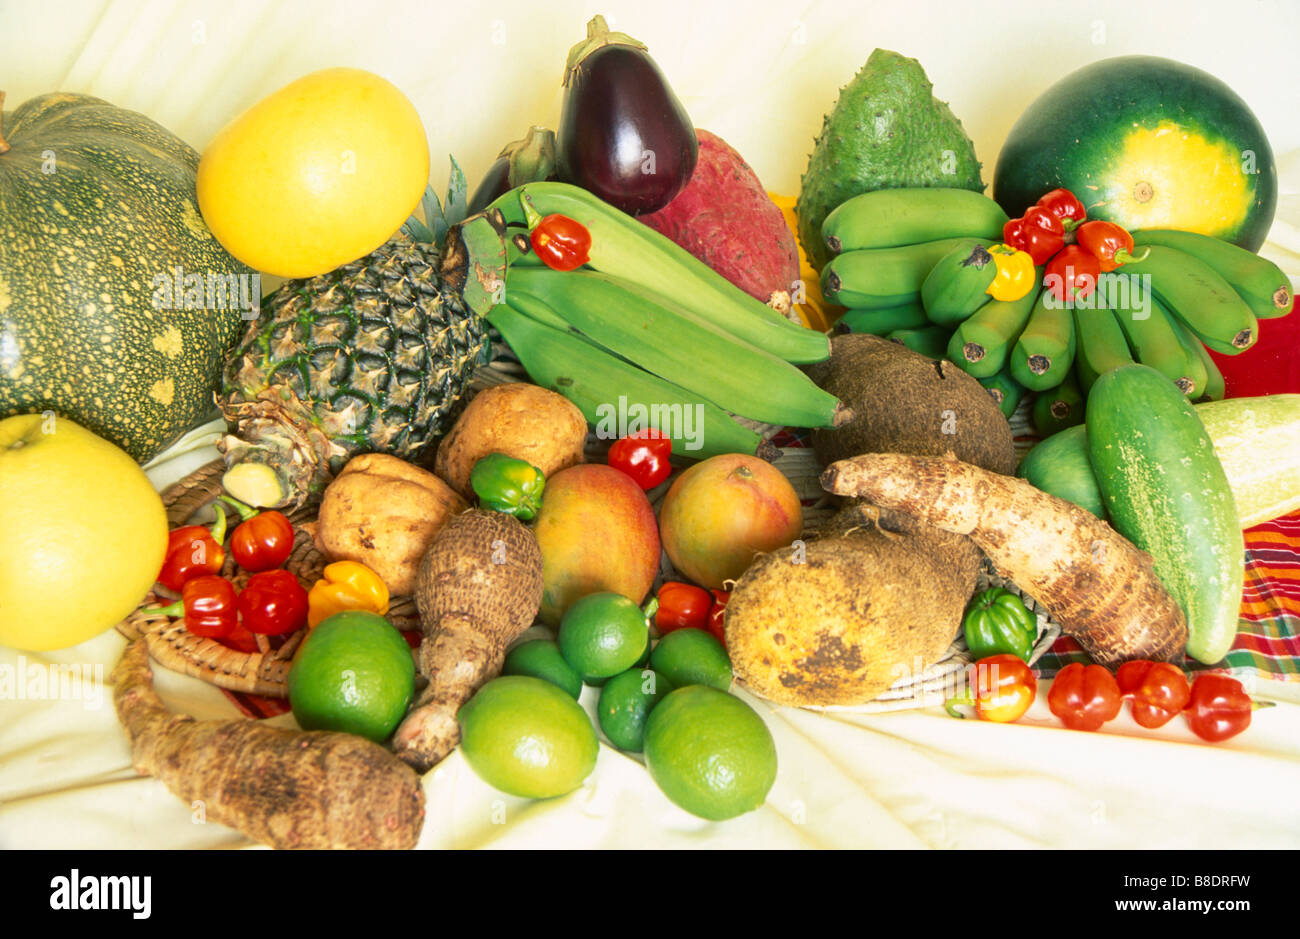 Tropical Fruits & Vegetables Stock Photo, Royalty Free ...